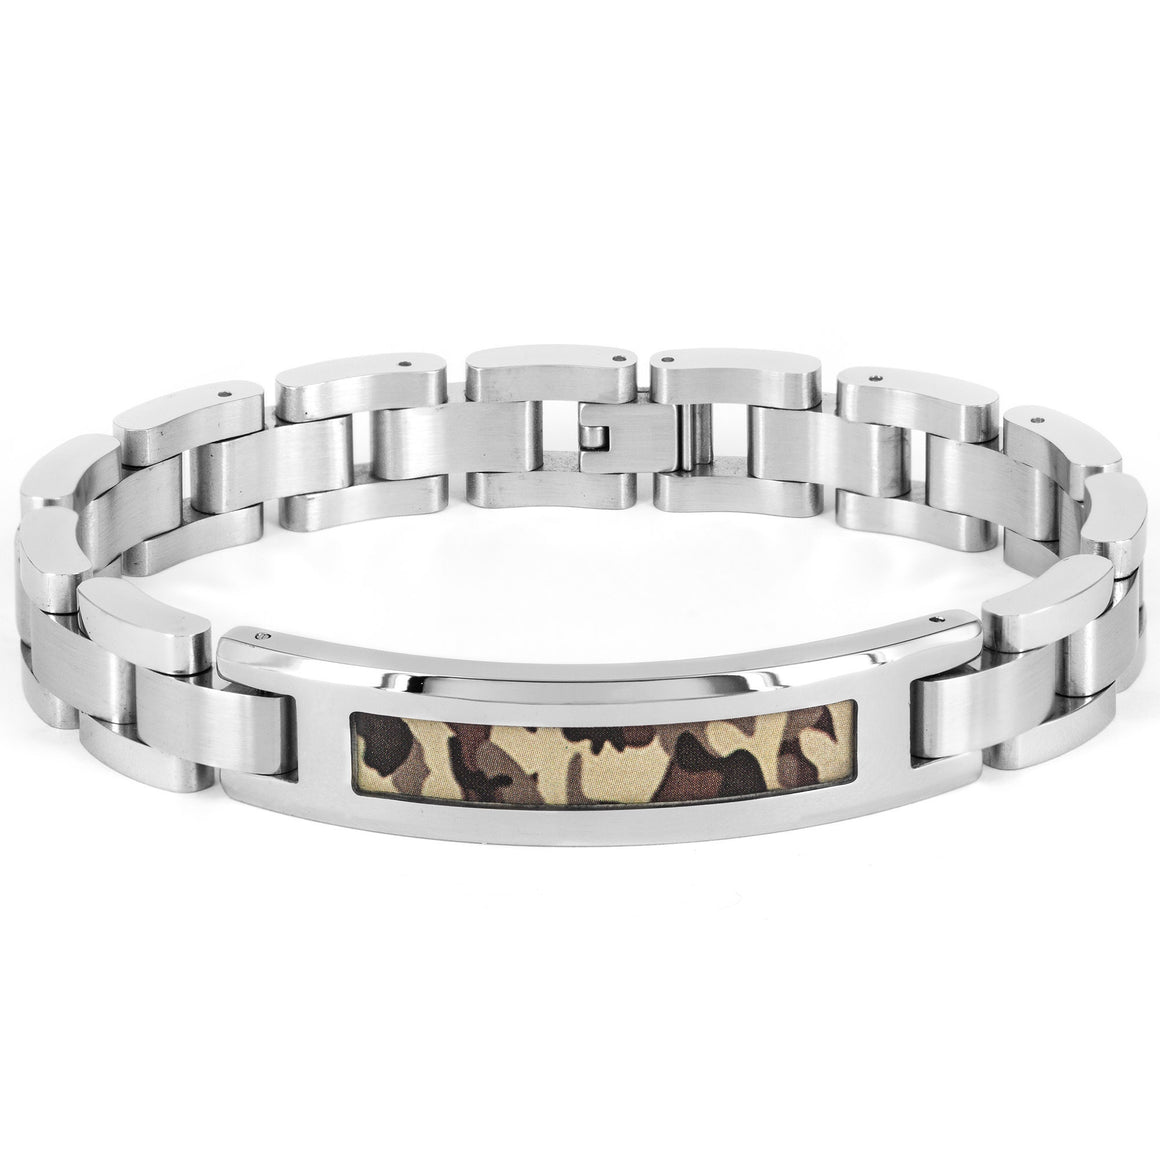 Crucible Stainless Steel Polished Green Camouflage ID Link Bracelet (12 mm) - 9""